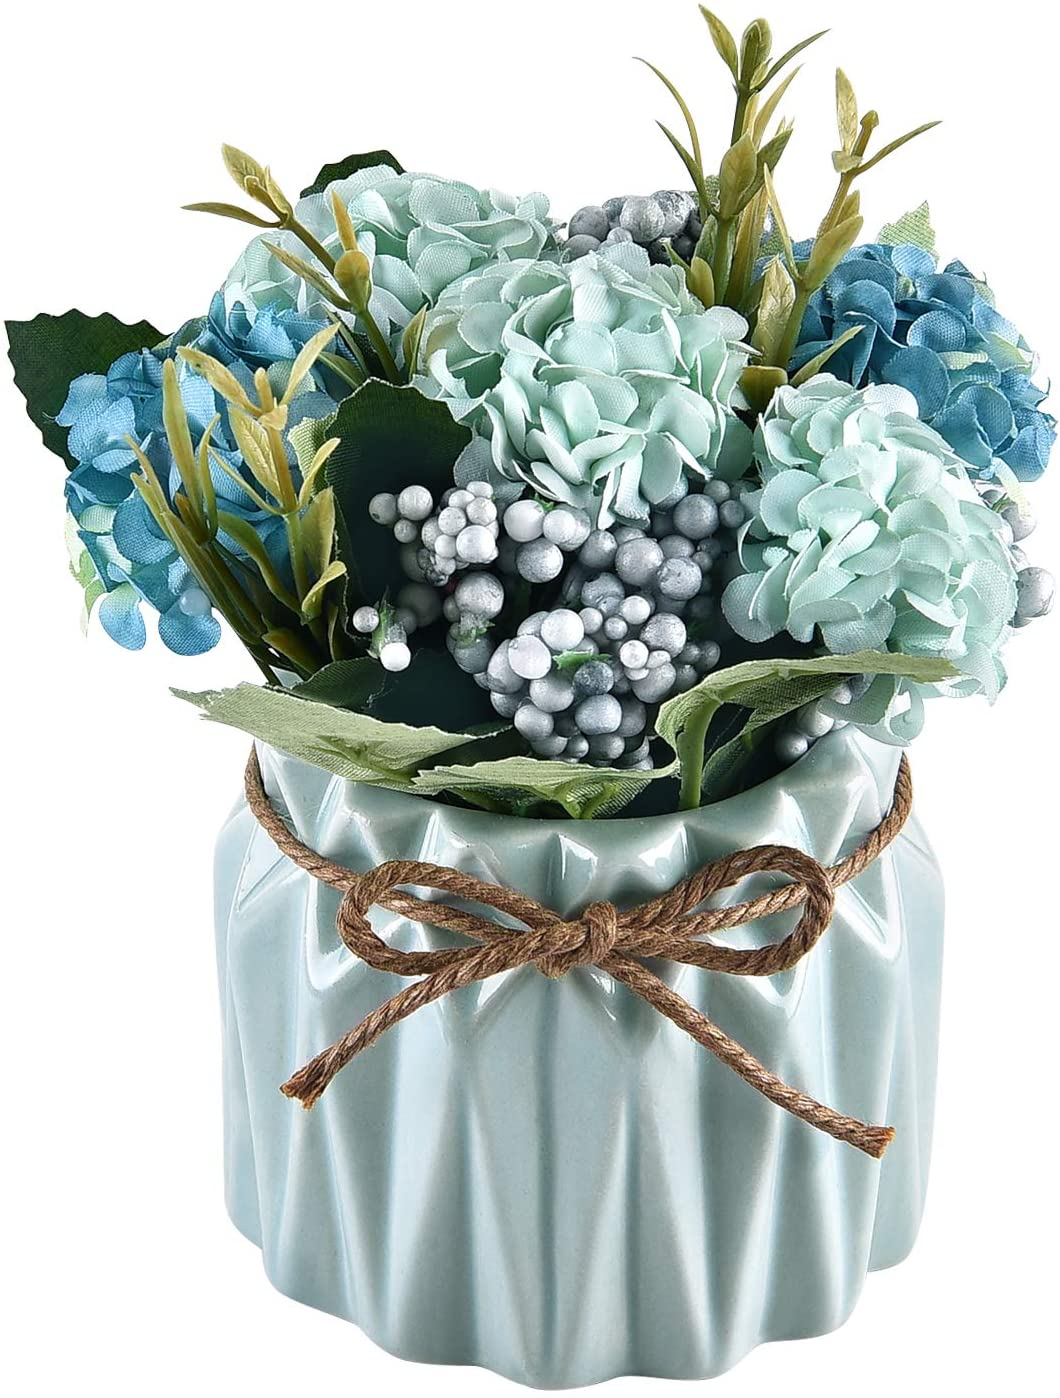 Shiny Flower Artificial Hydrangea Bouquet with Small Ceramic Vase Fake Hydrangea Flower Potted Artificial Fake Variety Silk Flower Bonsai for Home Party Wedding Office Table Decor, Blue